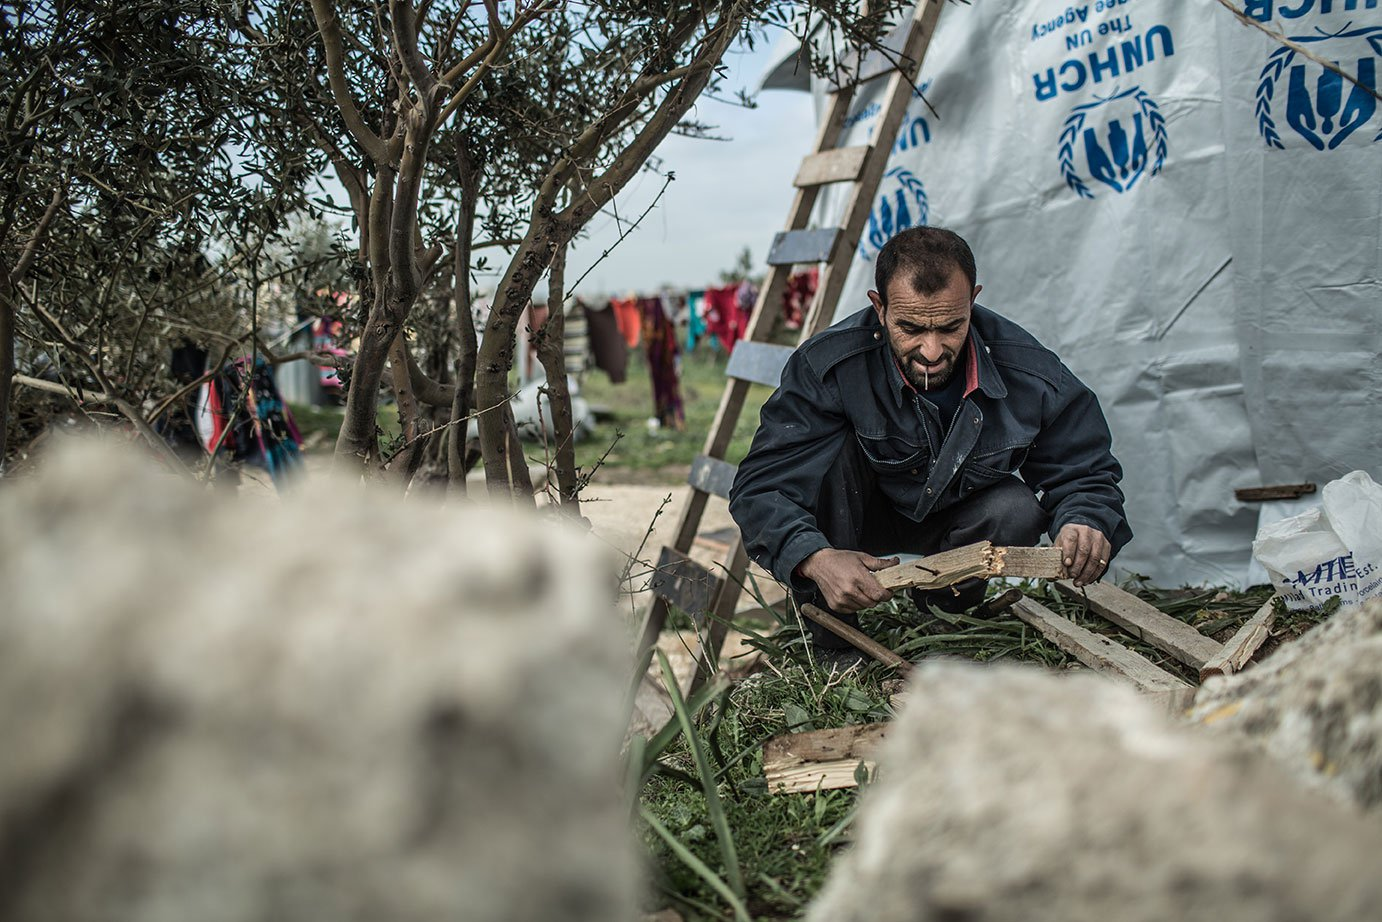 A Syrian man builds a shelter out of tarps and other material in Lebanon. Fighting has forced millions of Syrians to flee their country.